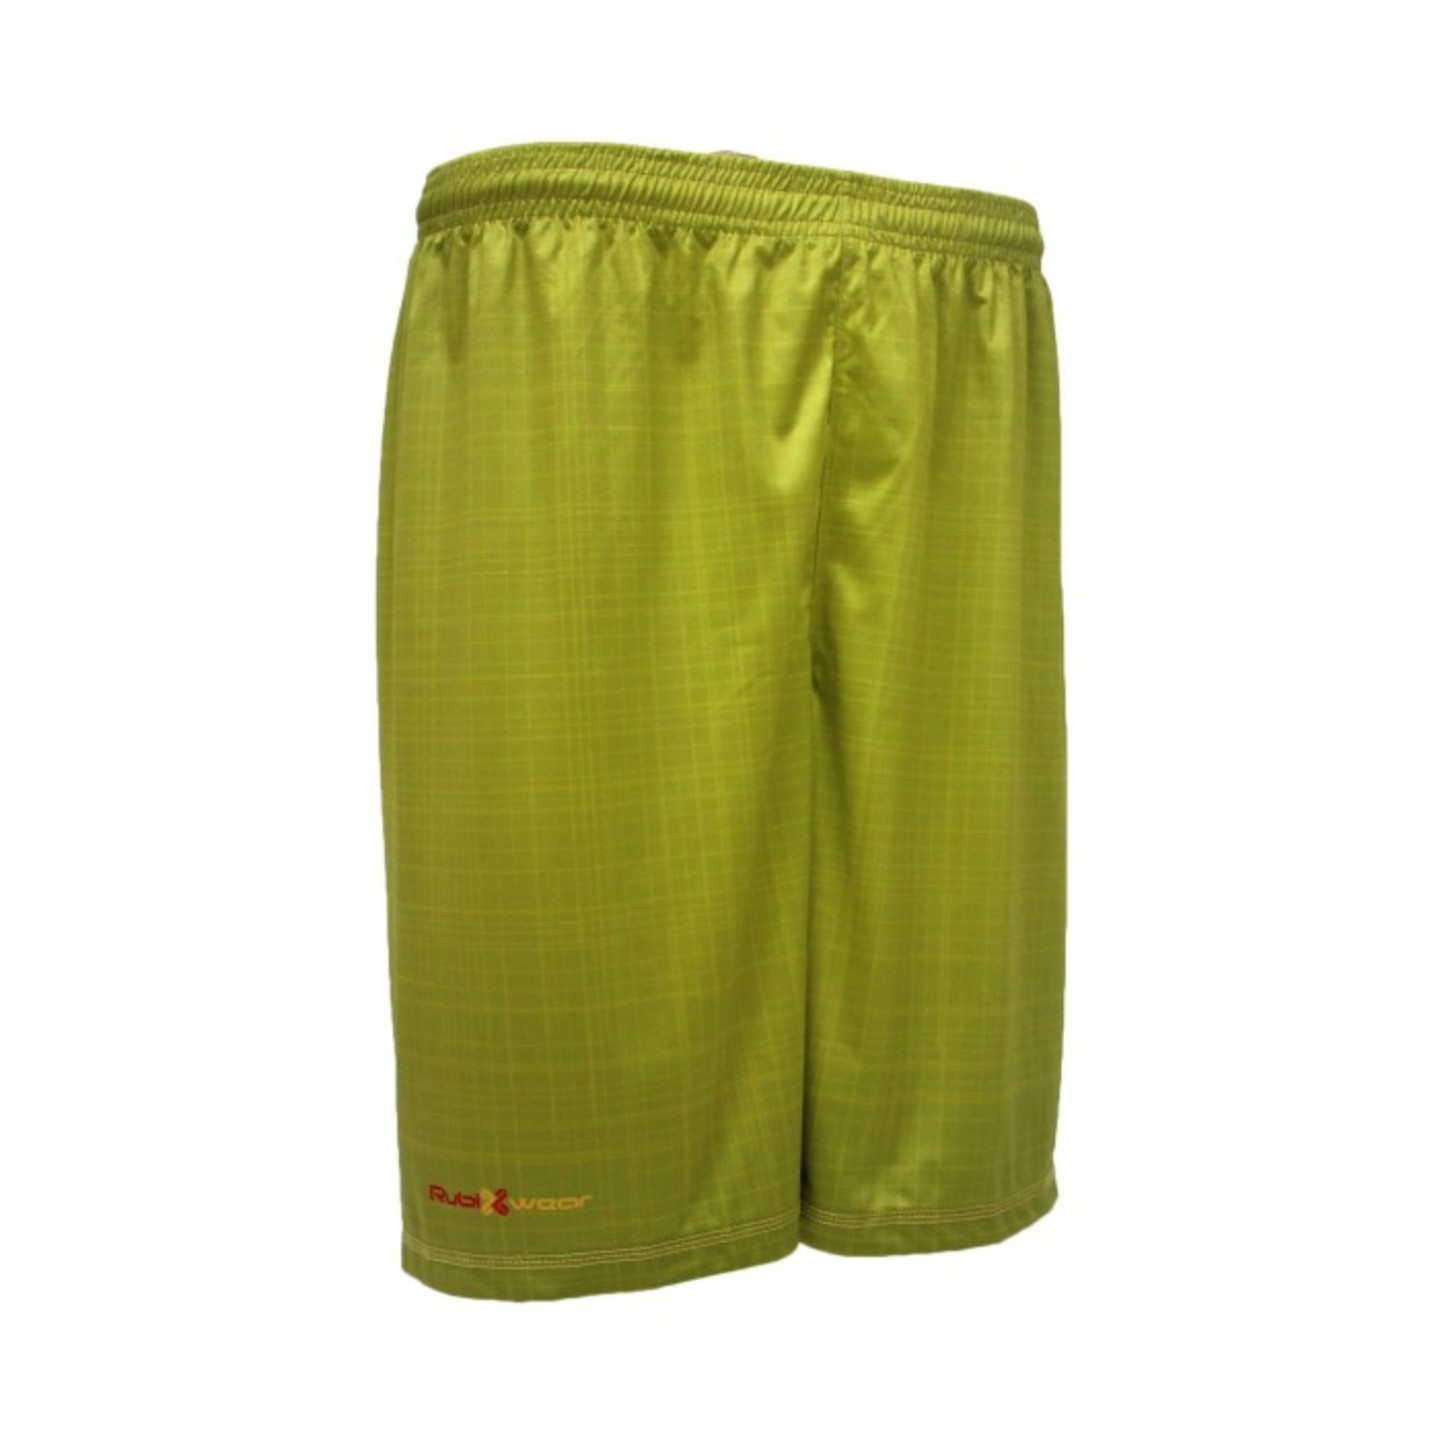 Green Grid Sublimated Shorts